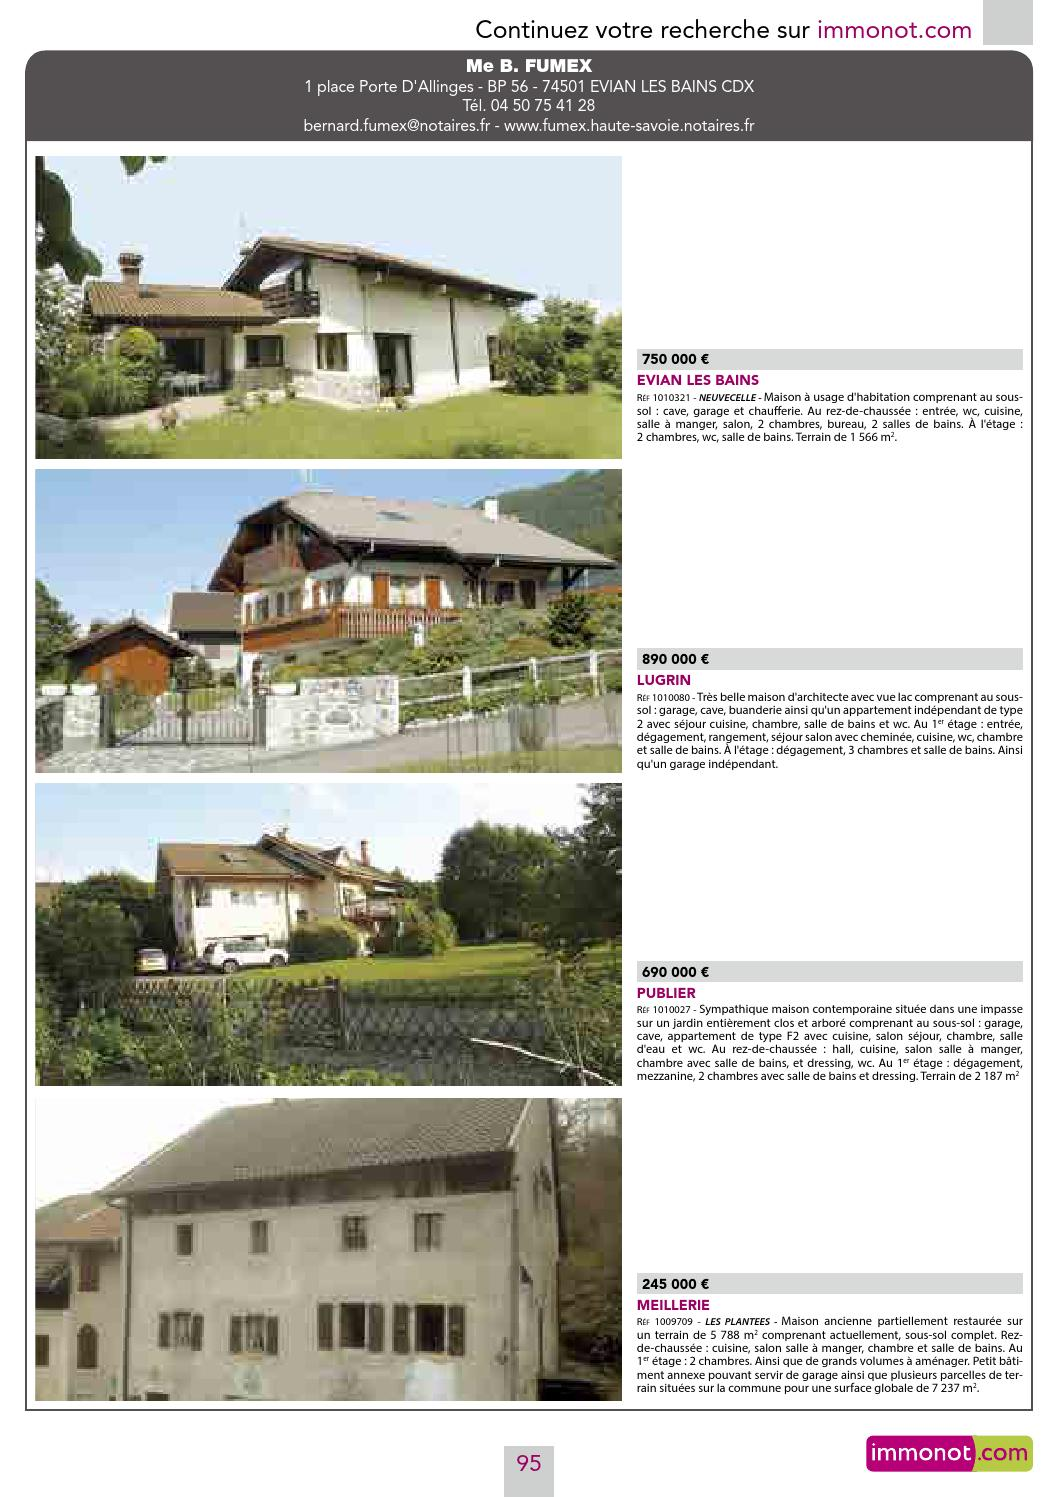 Charmant Magazine Immobilier Des Notaires By Nicolas Dubernard   Issuu